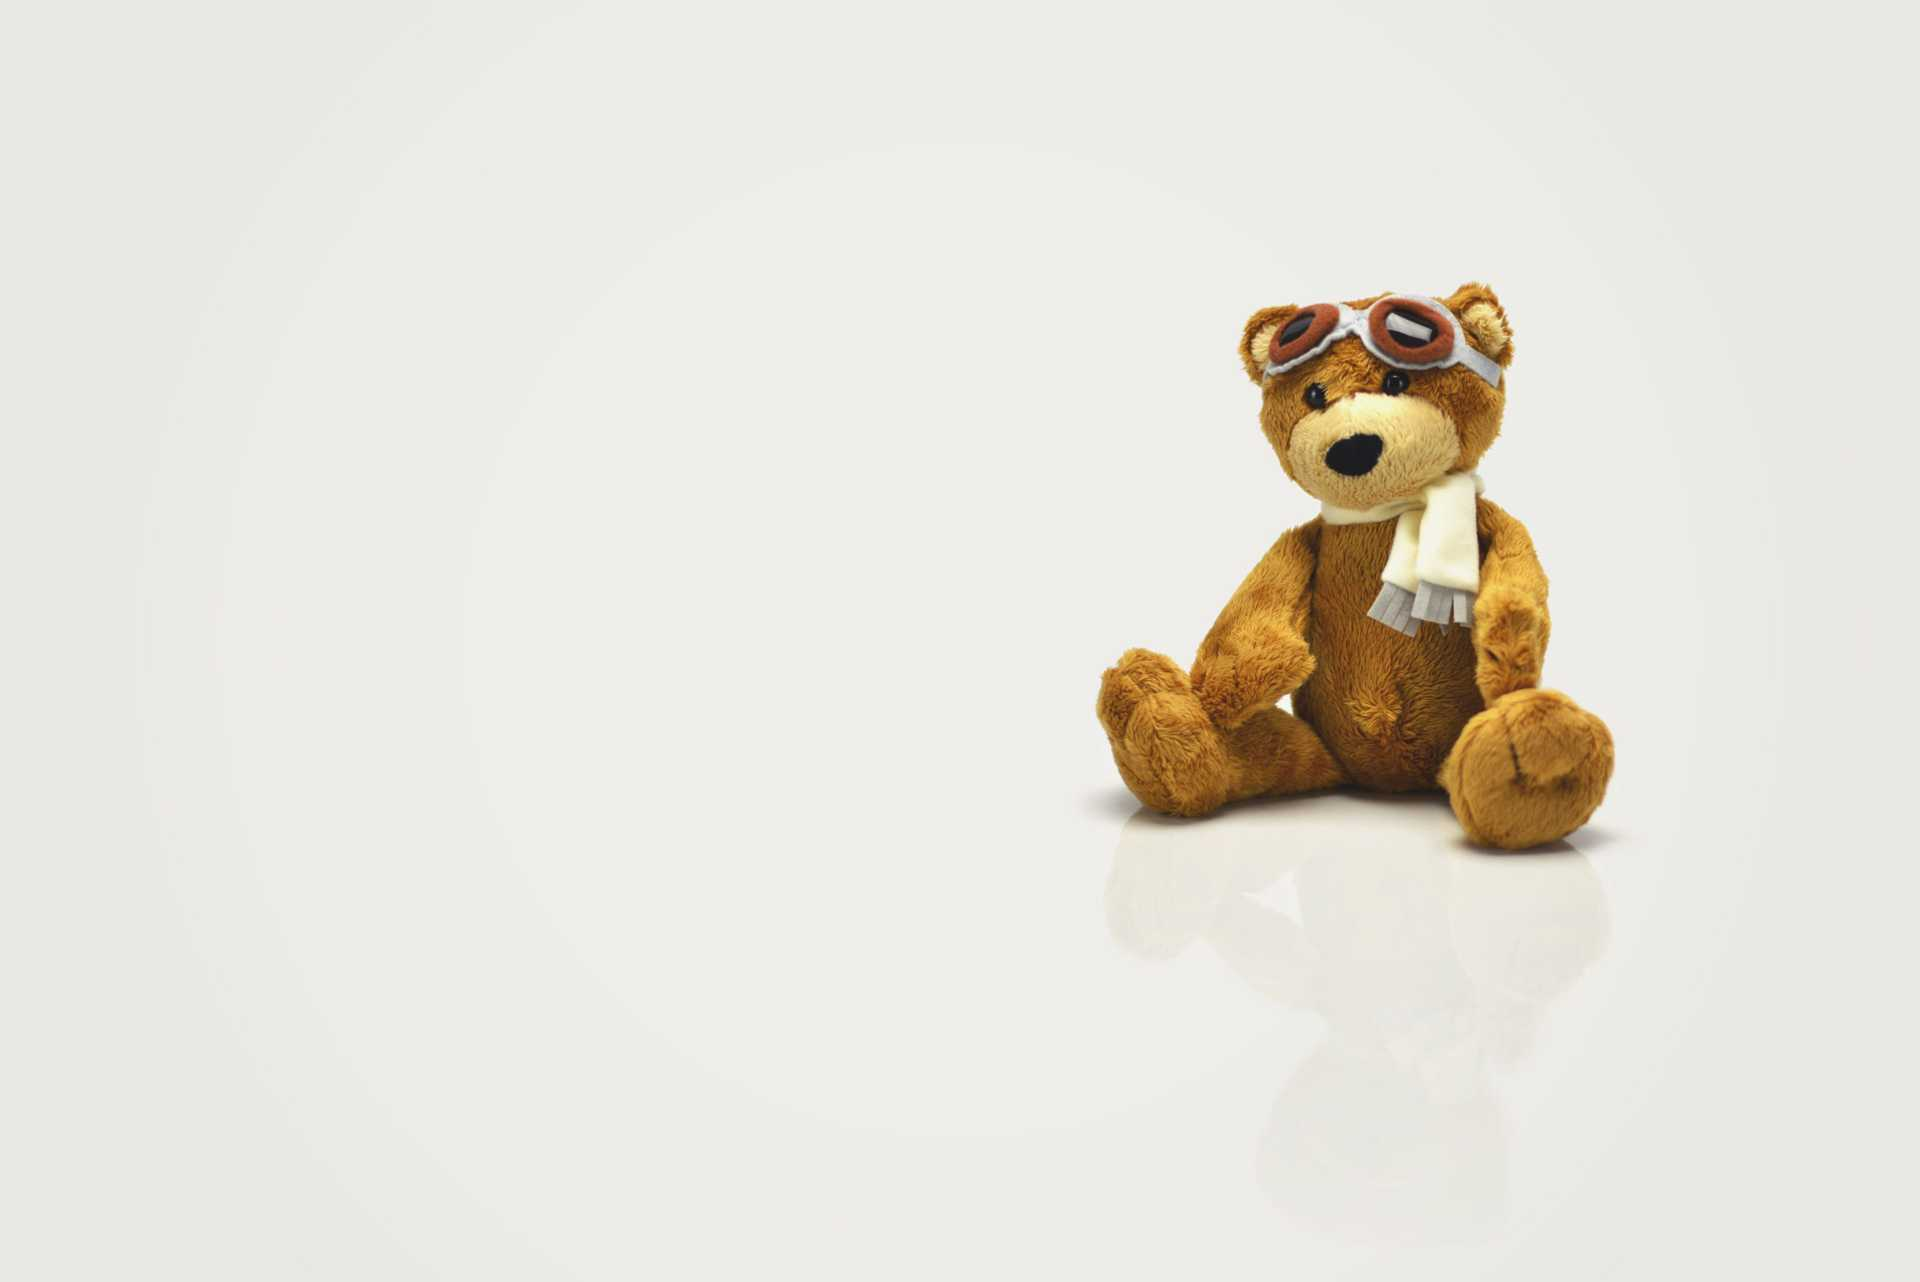 Brown teddy bear with goggles and a scarf on a white backgroud